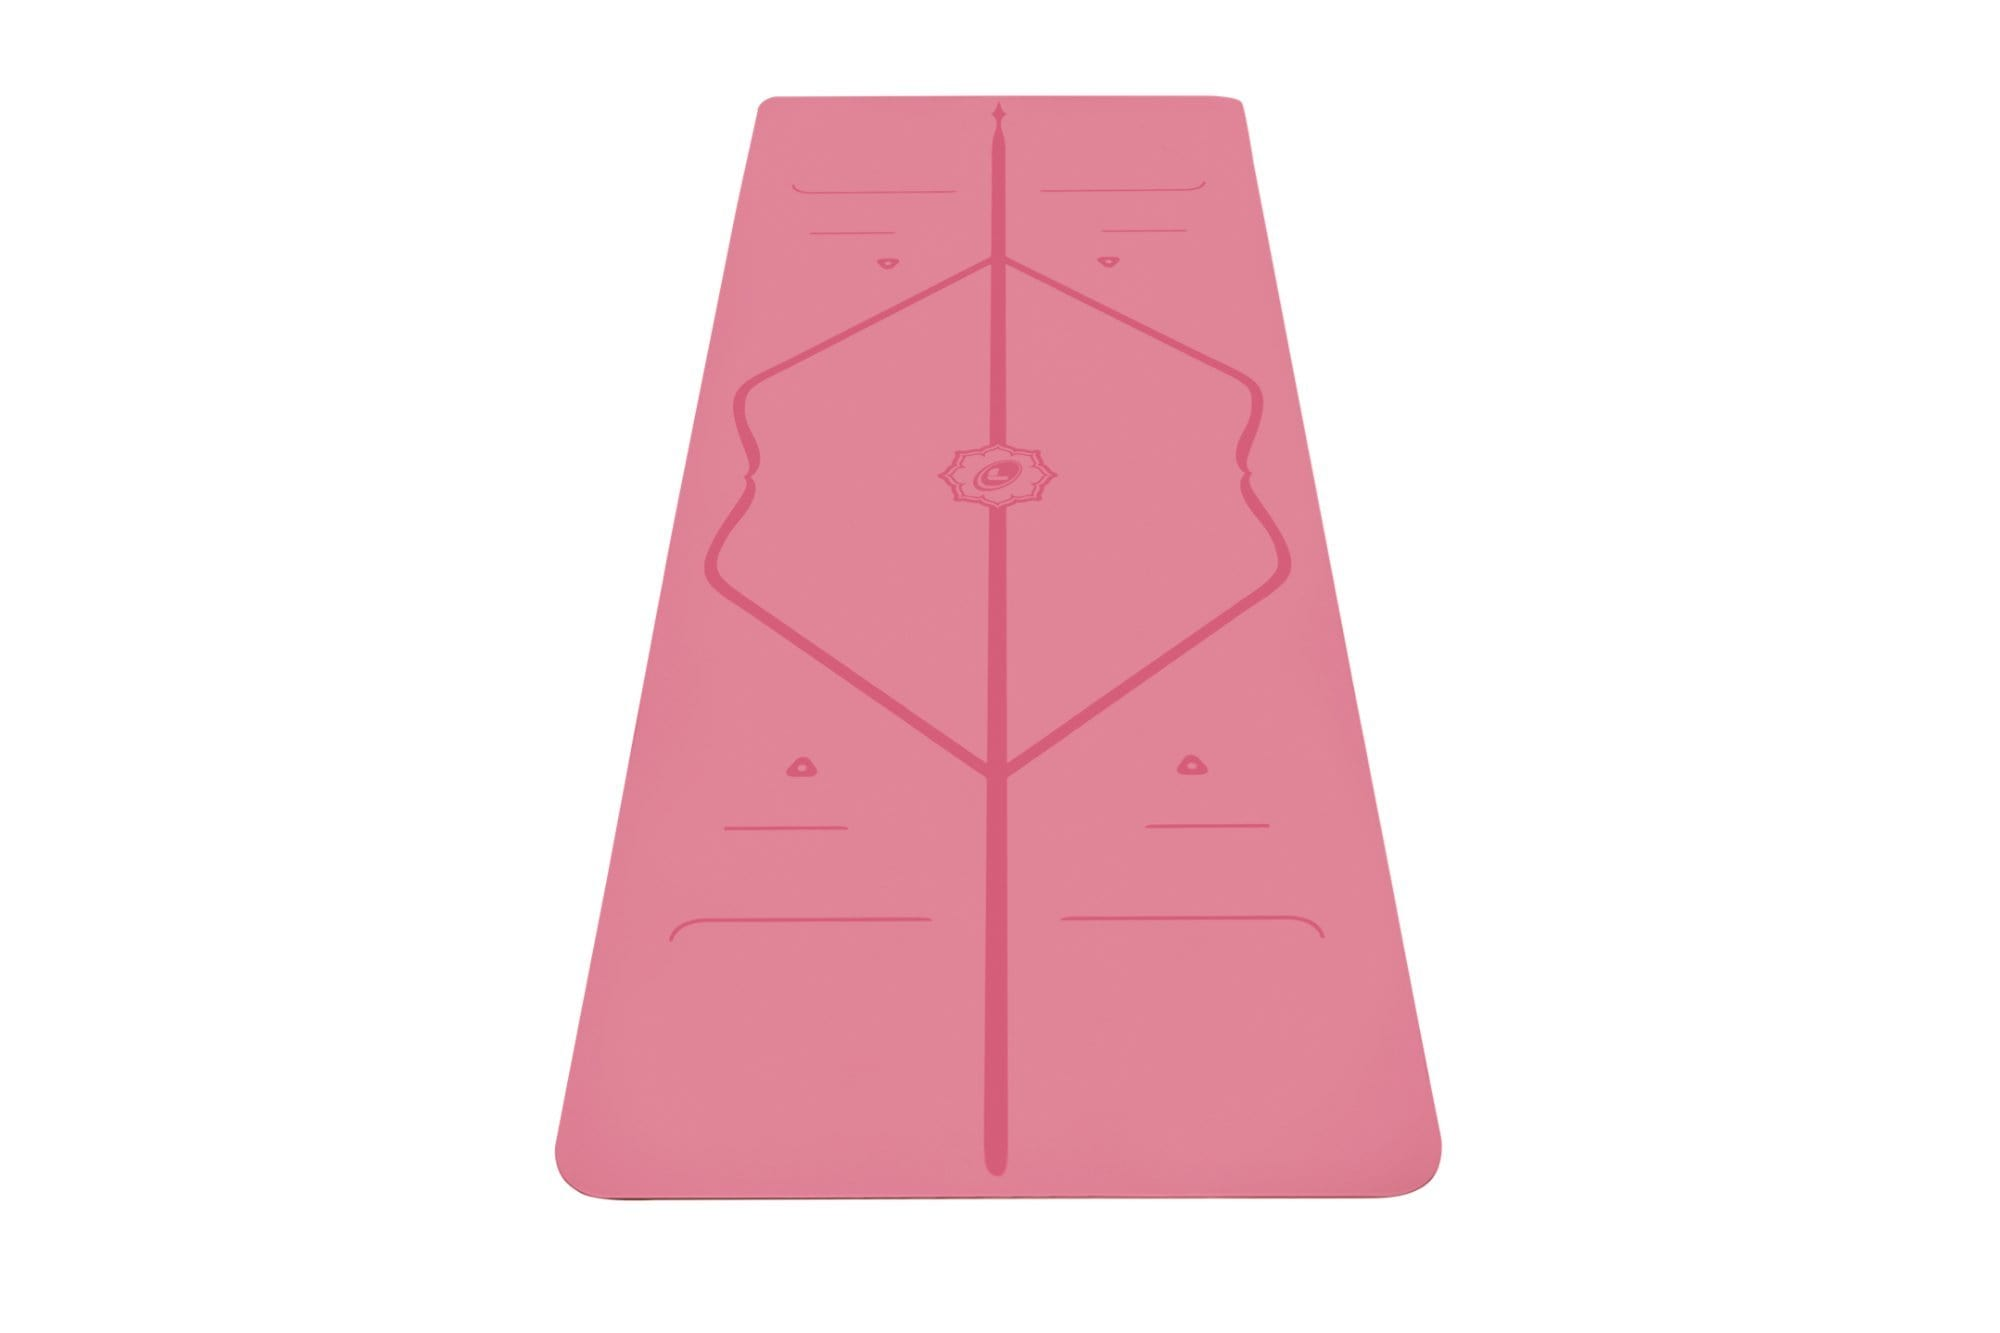 Portrait view of pink Yoga mat from Liforme